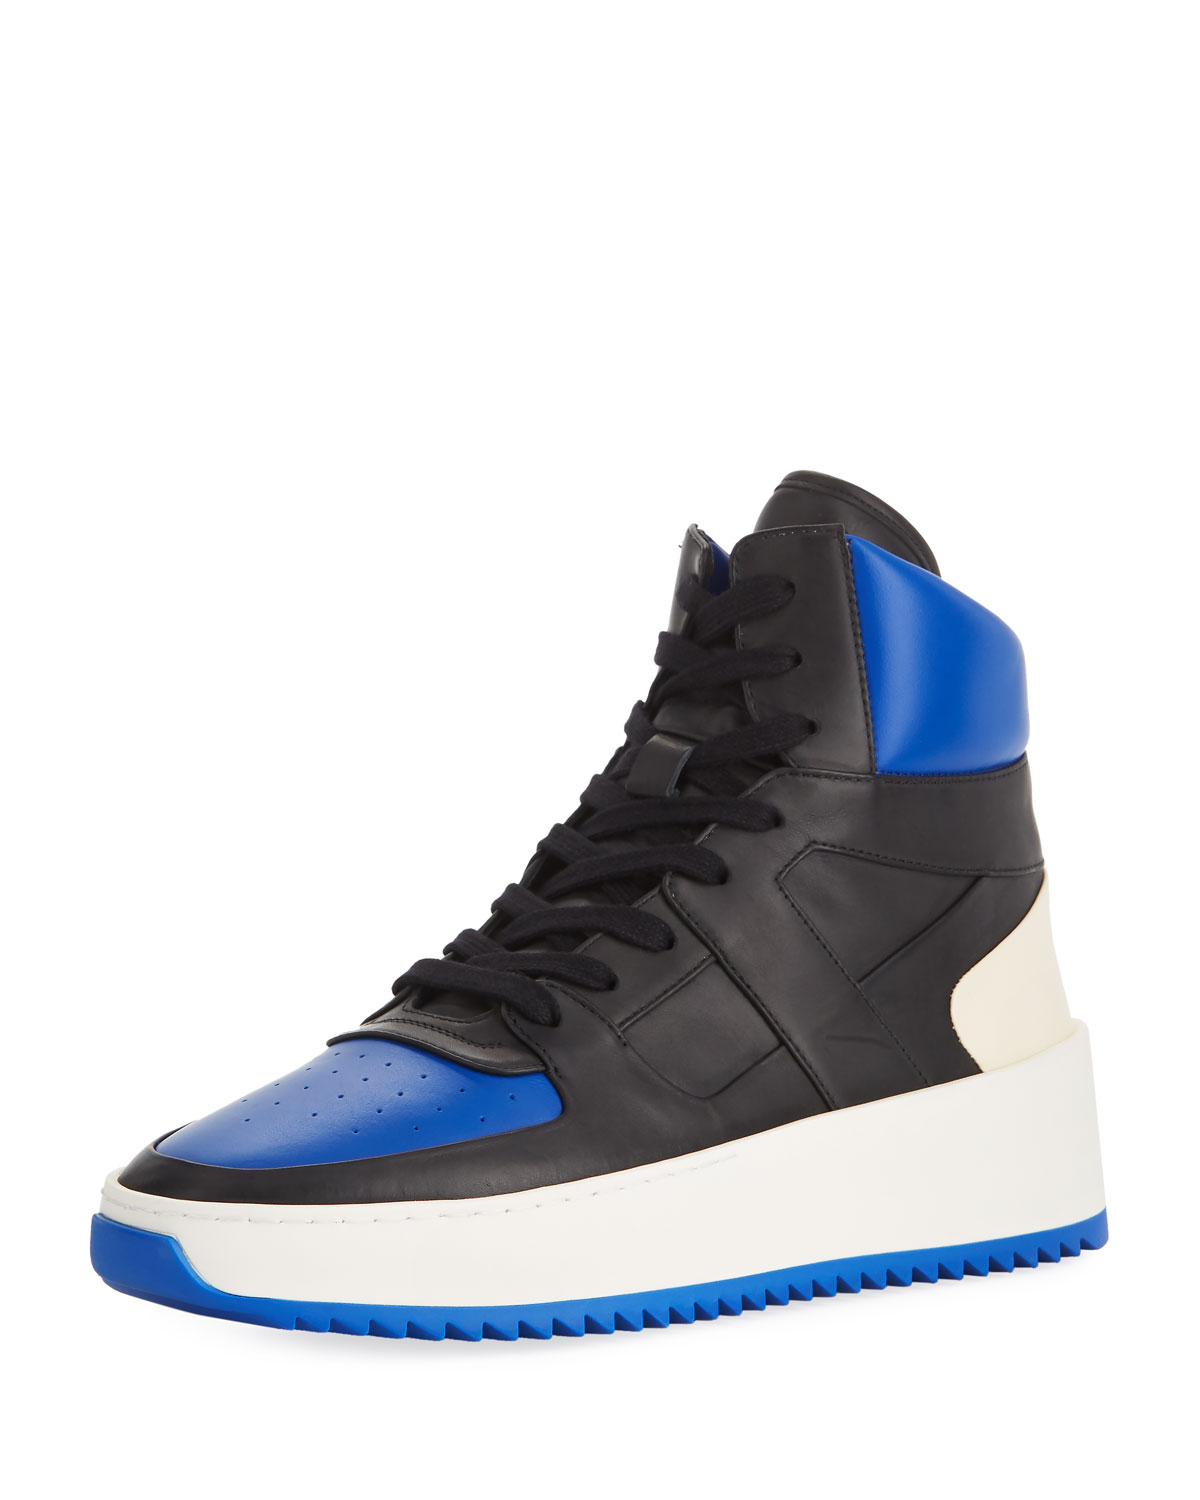 0d9d7429b3e Fear of God Men s Two-Tone Leather High-Top Basketball Sneakers ...